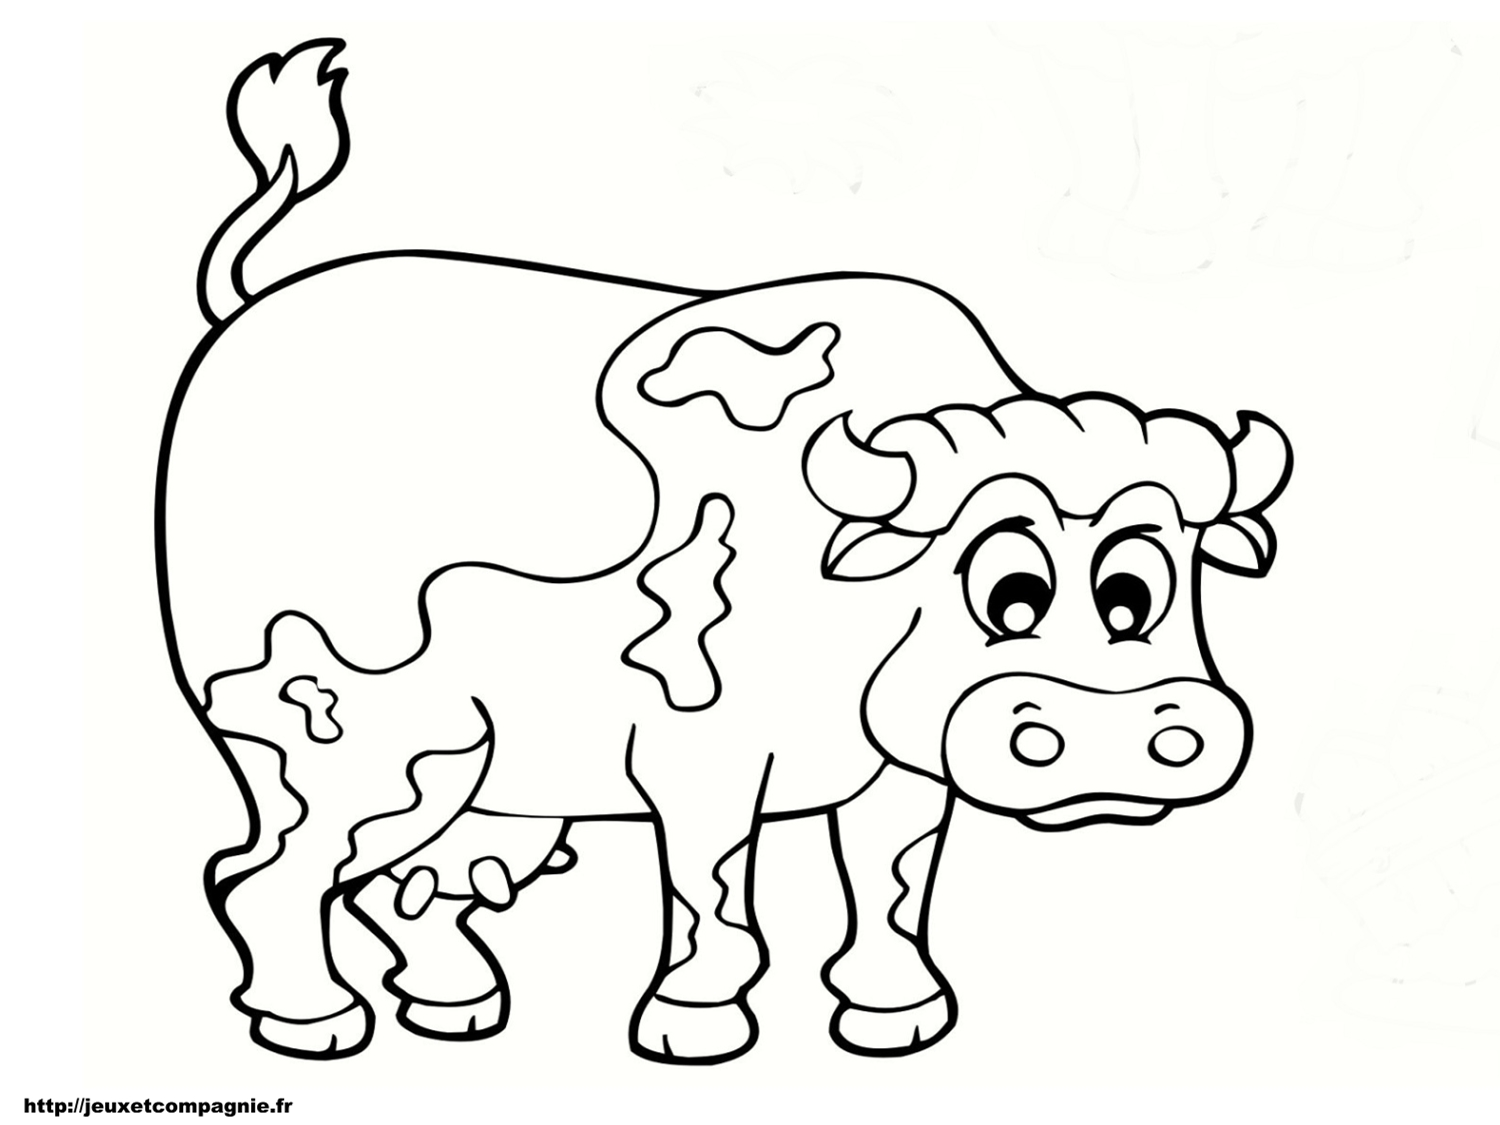 Coloriages animaux de la ferme - Grand dessin a colorier ...